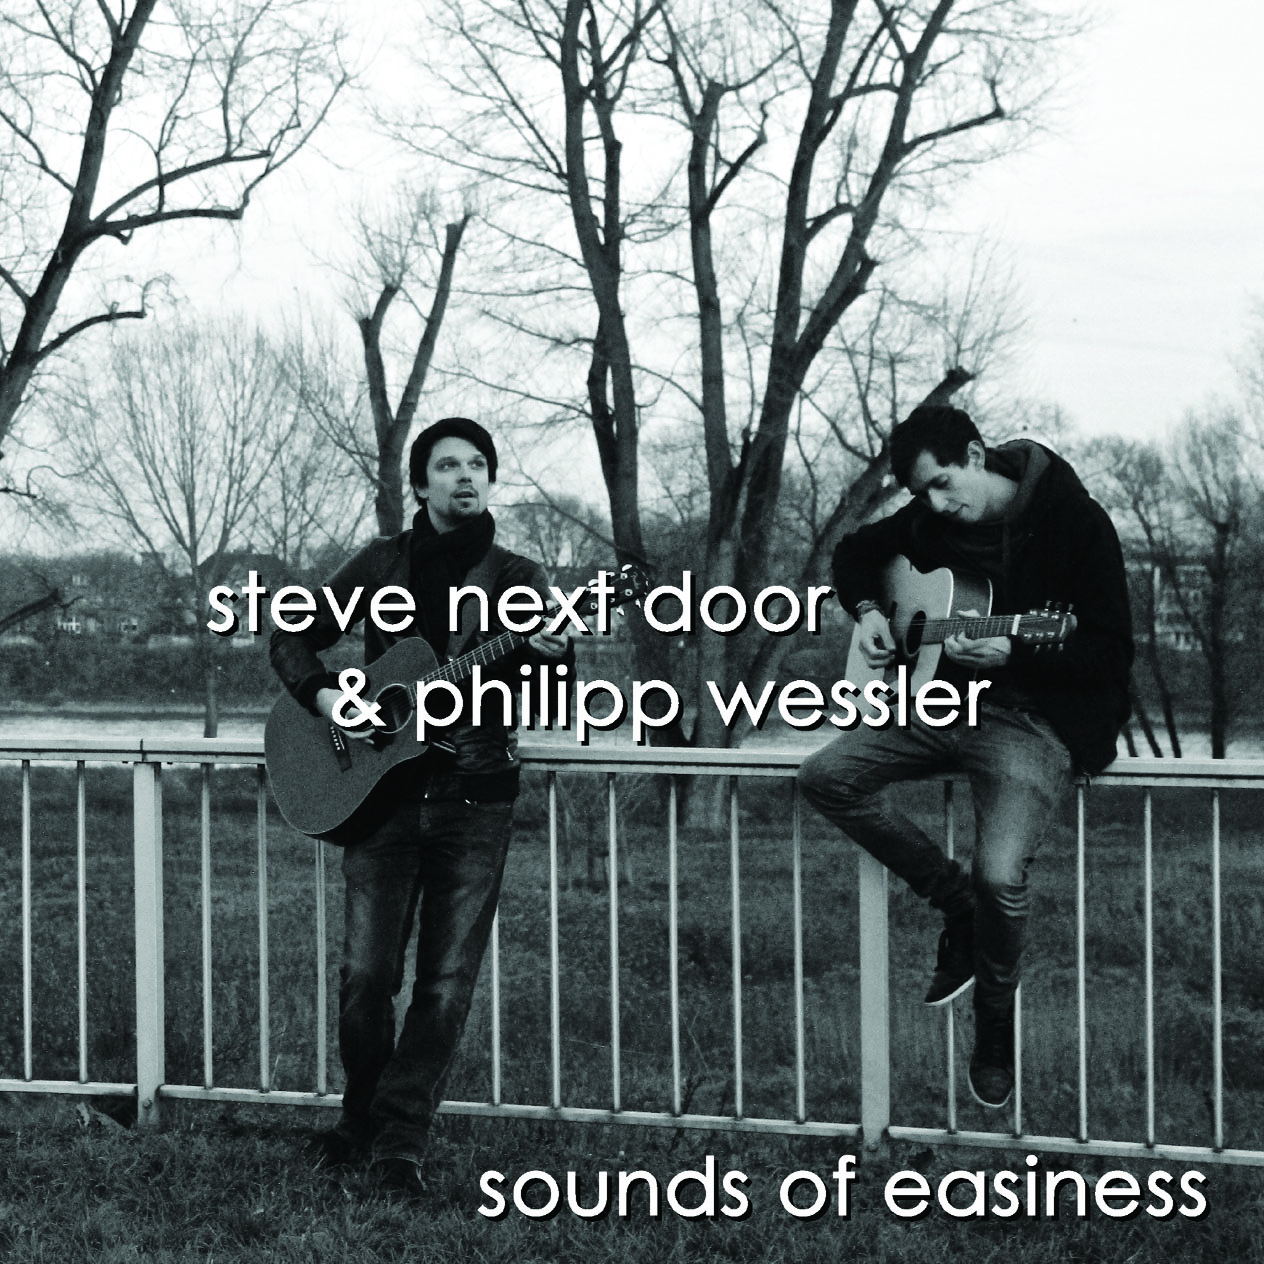 steve next door + philipp wessler _ sounds of easiness